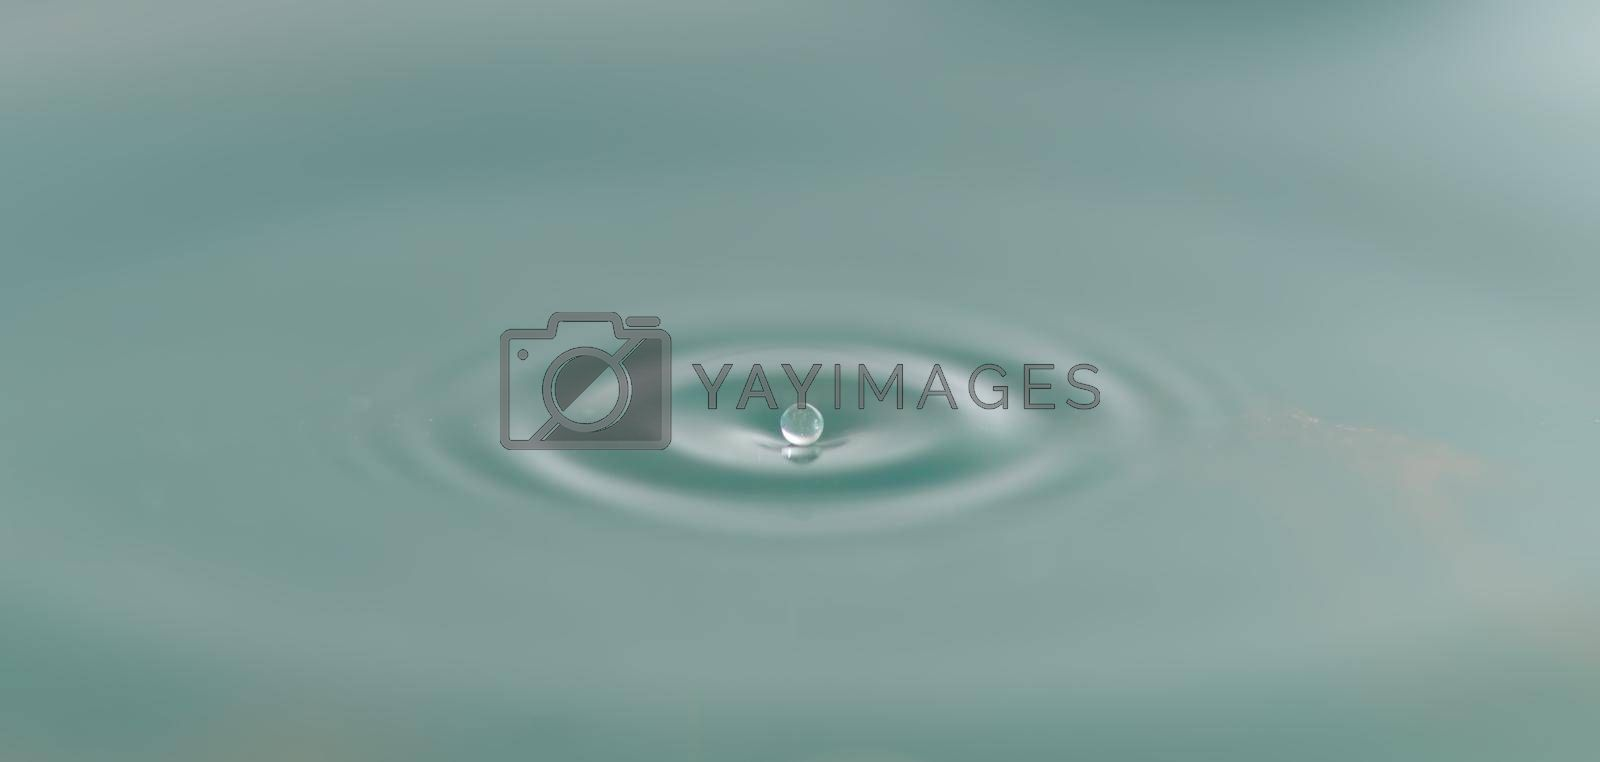 Abstract Water Drop Sphere Background Image Blue Tone Select Focus Water Drop